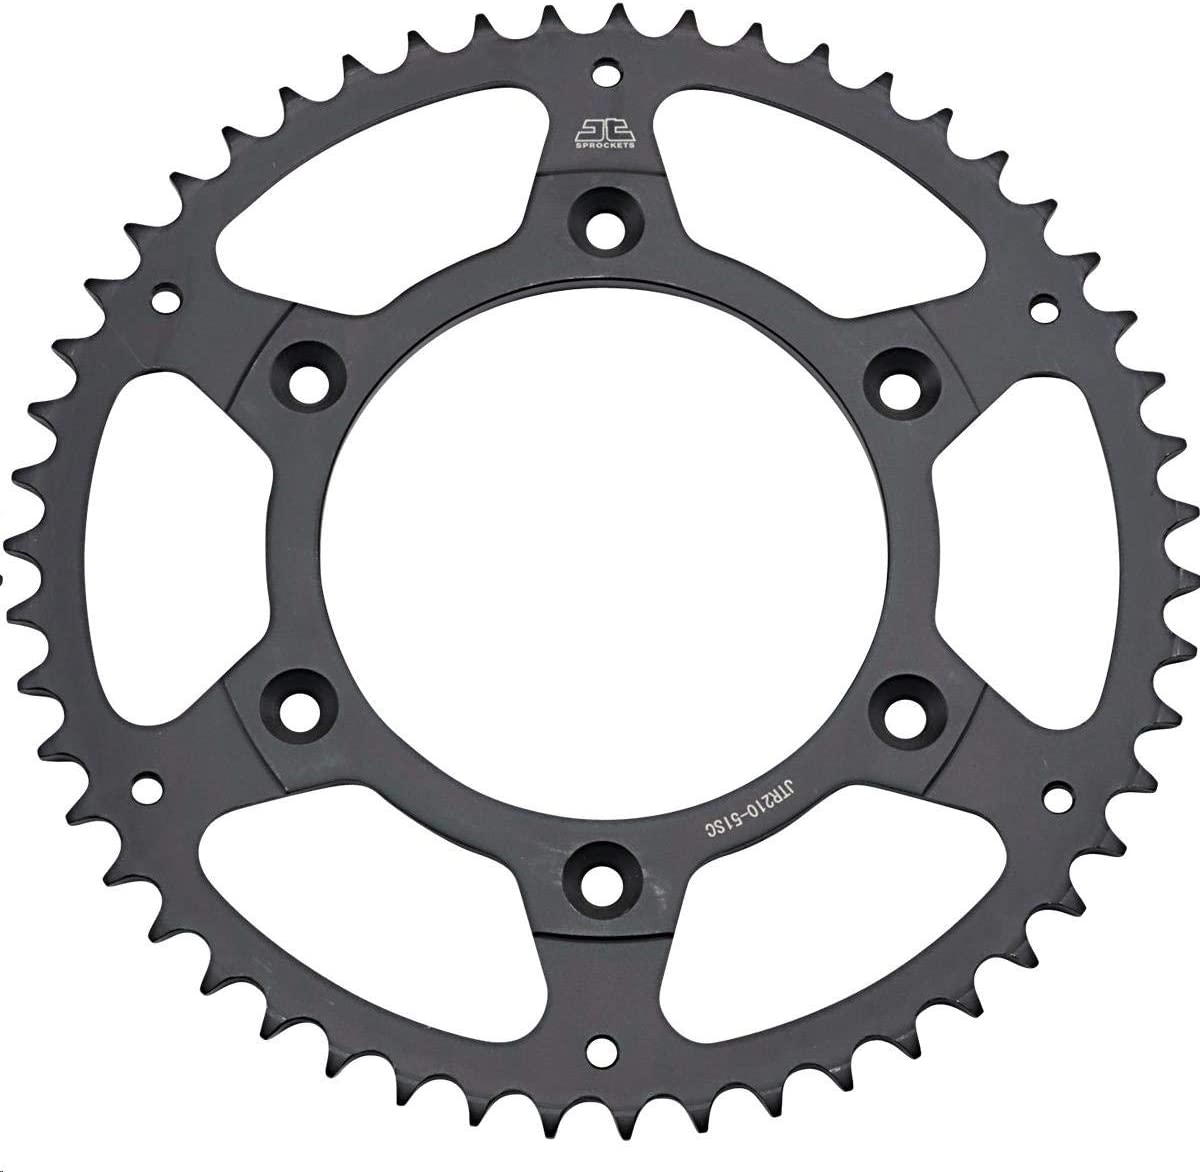 JT Branded goods Sprockets JTR210.51SC Limited time cheap sale 51 Tooth Rear Sproc Steel Self-Cleaning